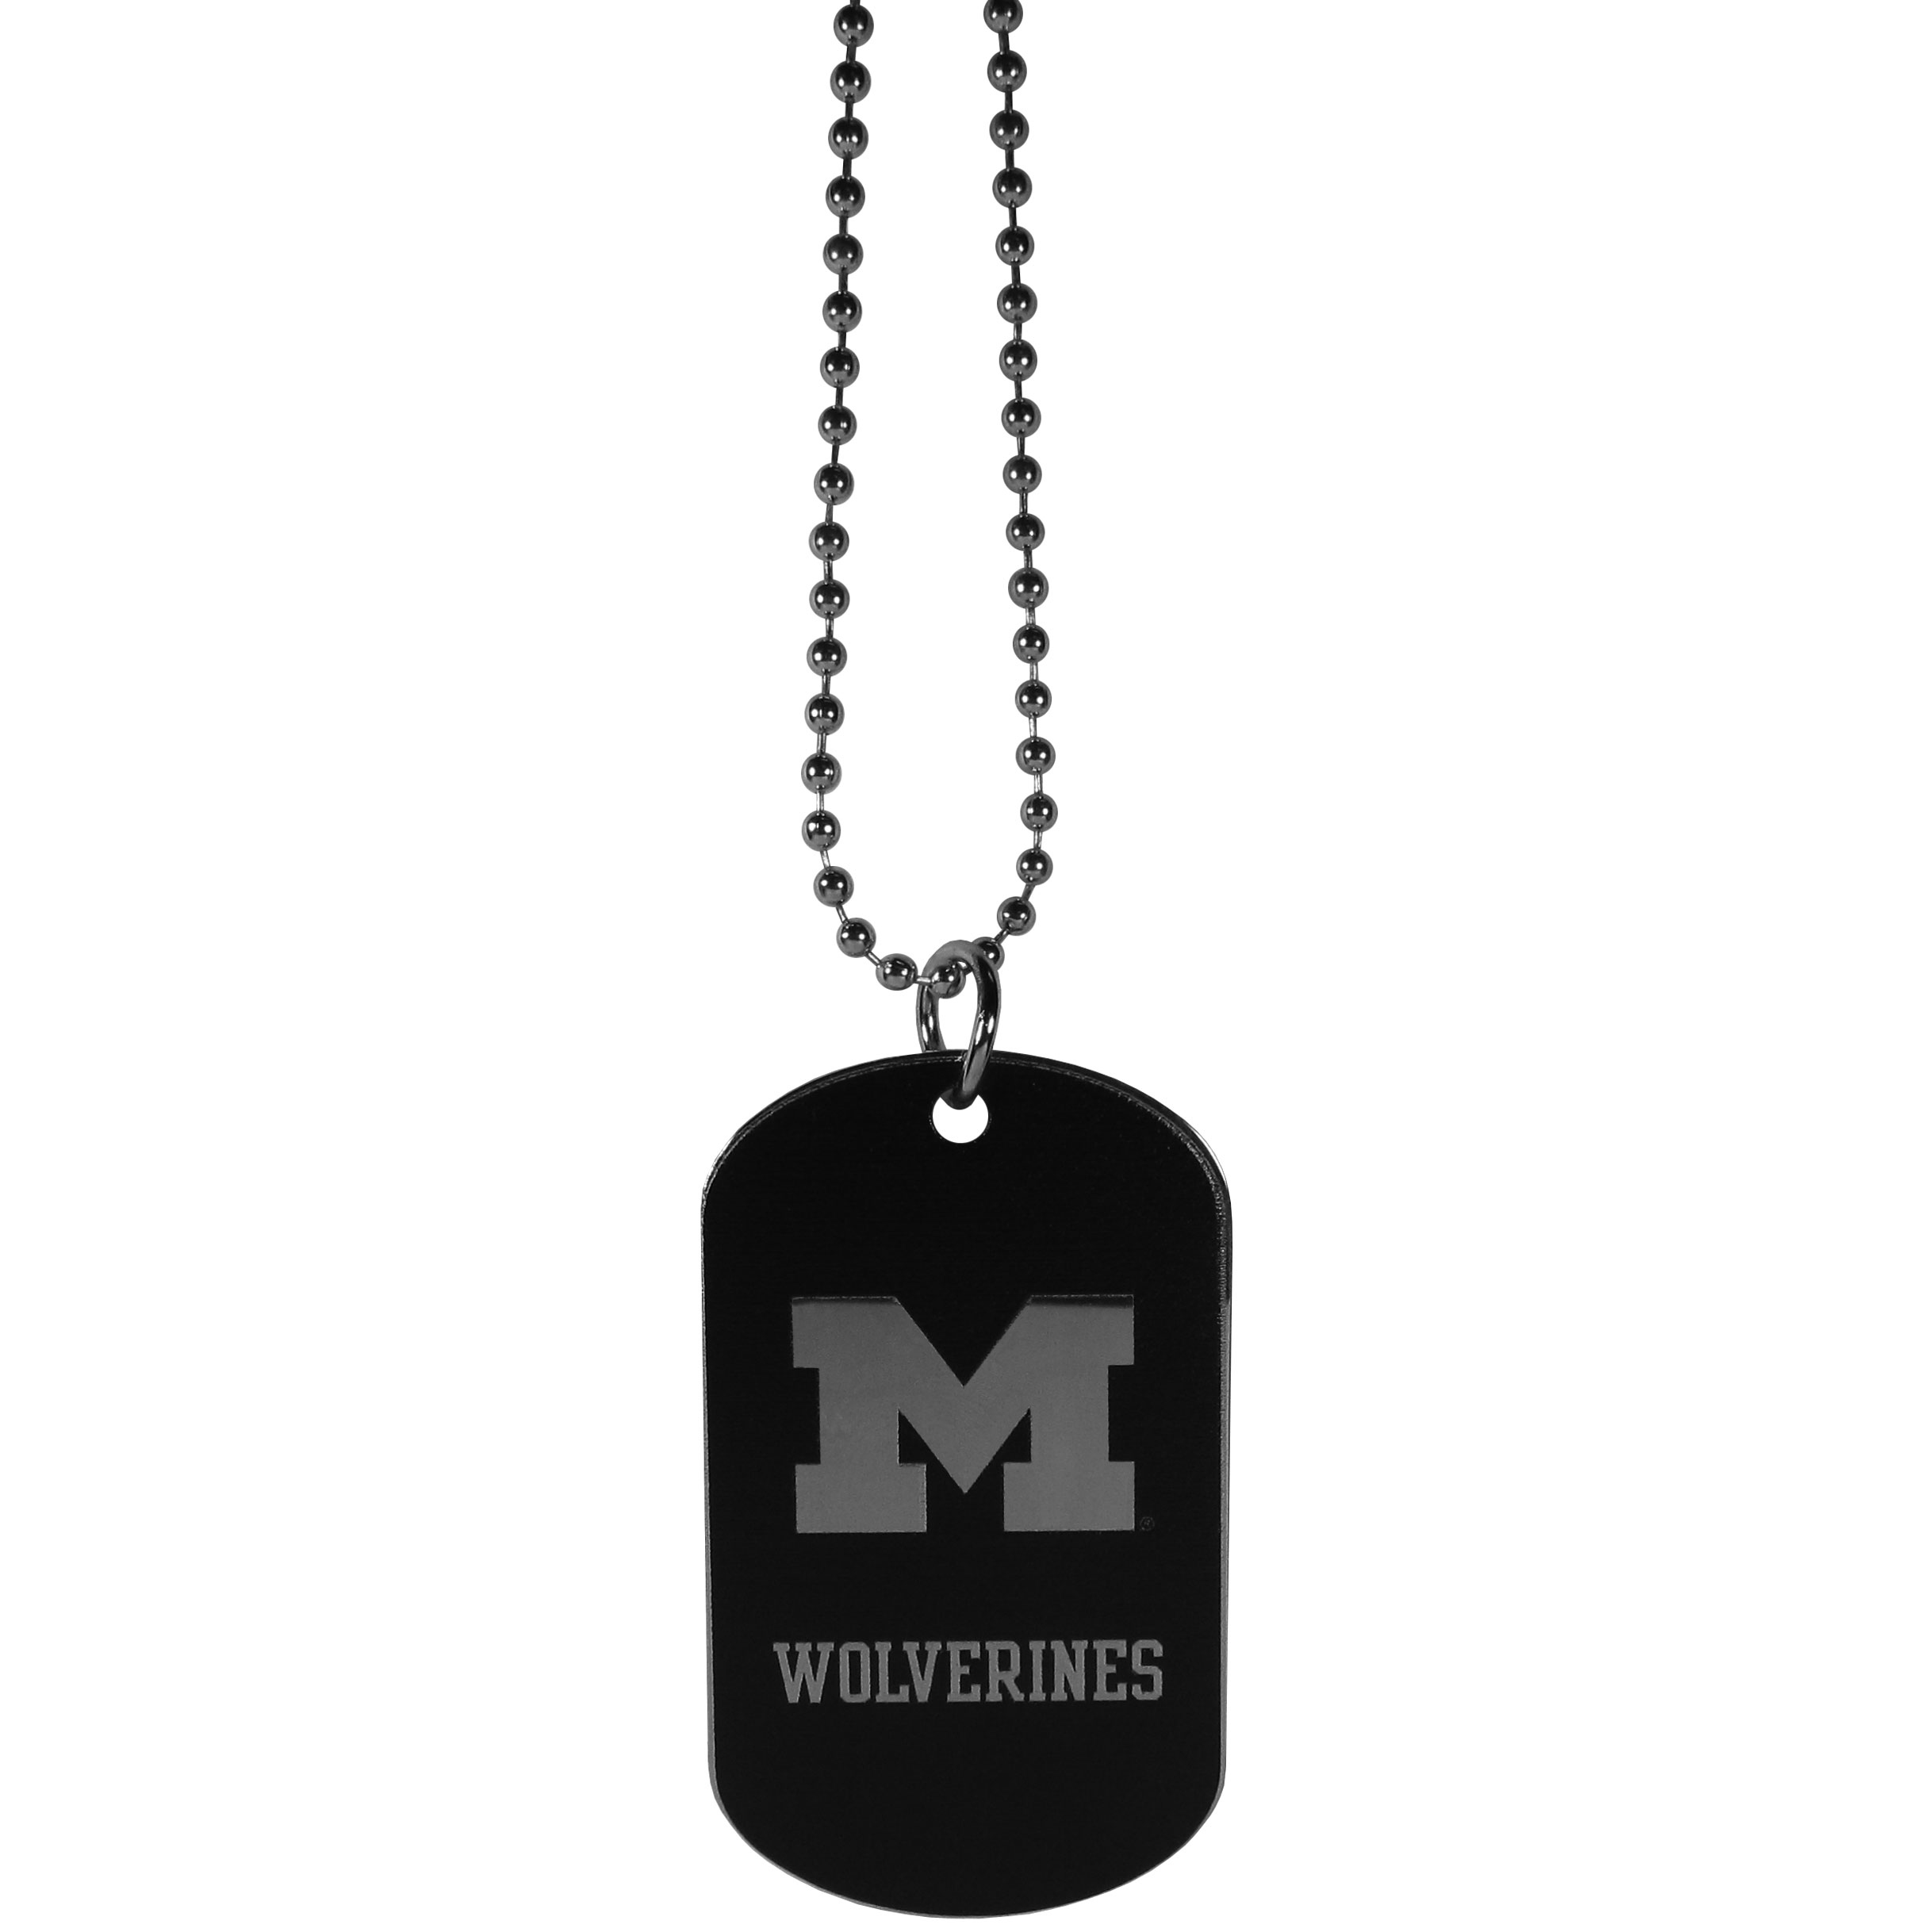 Michigan Wolverines Chrome Tag Necklace - Dog tag necklaces are a fashion statement that is here to stay. The sporty version of the classic tag features a black printed over a high polish tag to create a bold and sporty look. The tag comes on a 26 inch ball chain with a ball and joint clasp. Any Michigan Wolverines would be proud to wear this attractive fashion accessory.